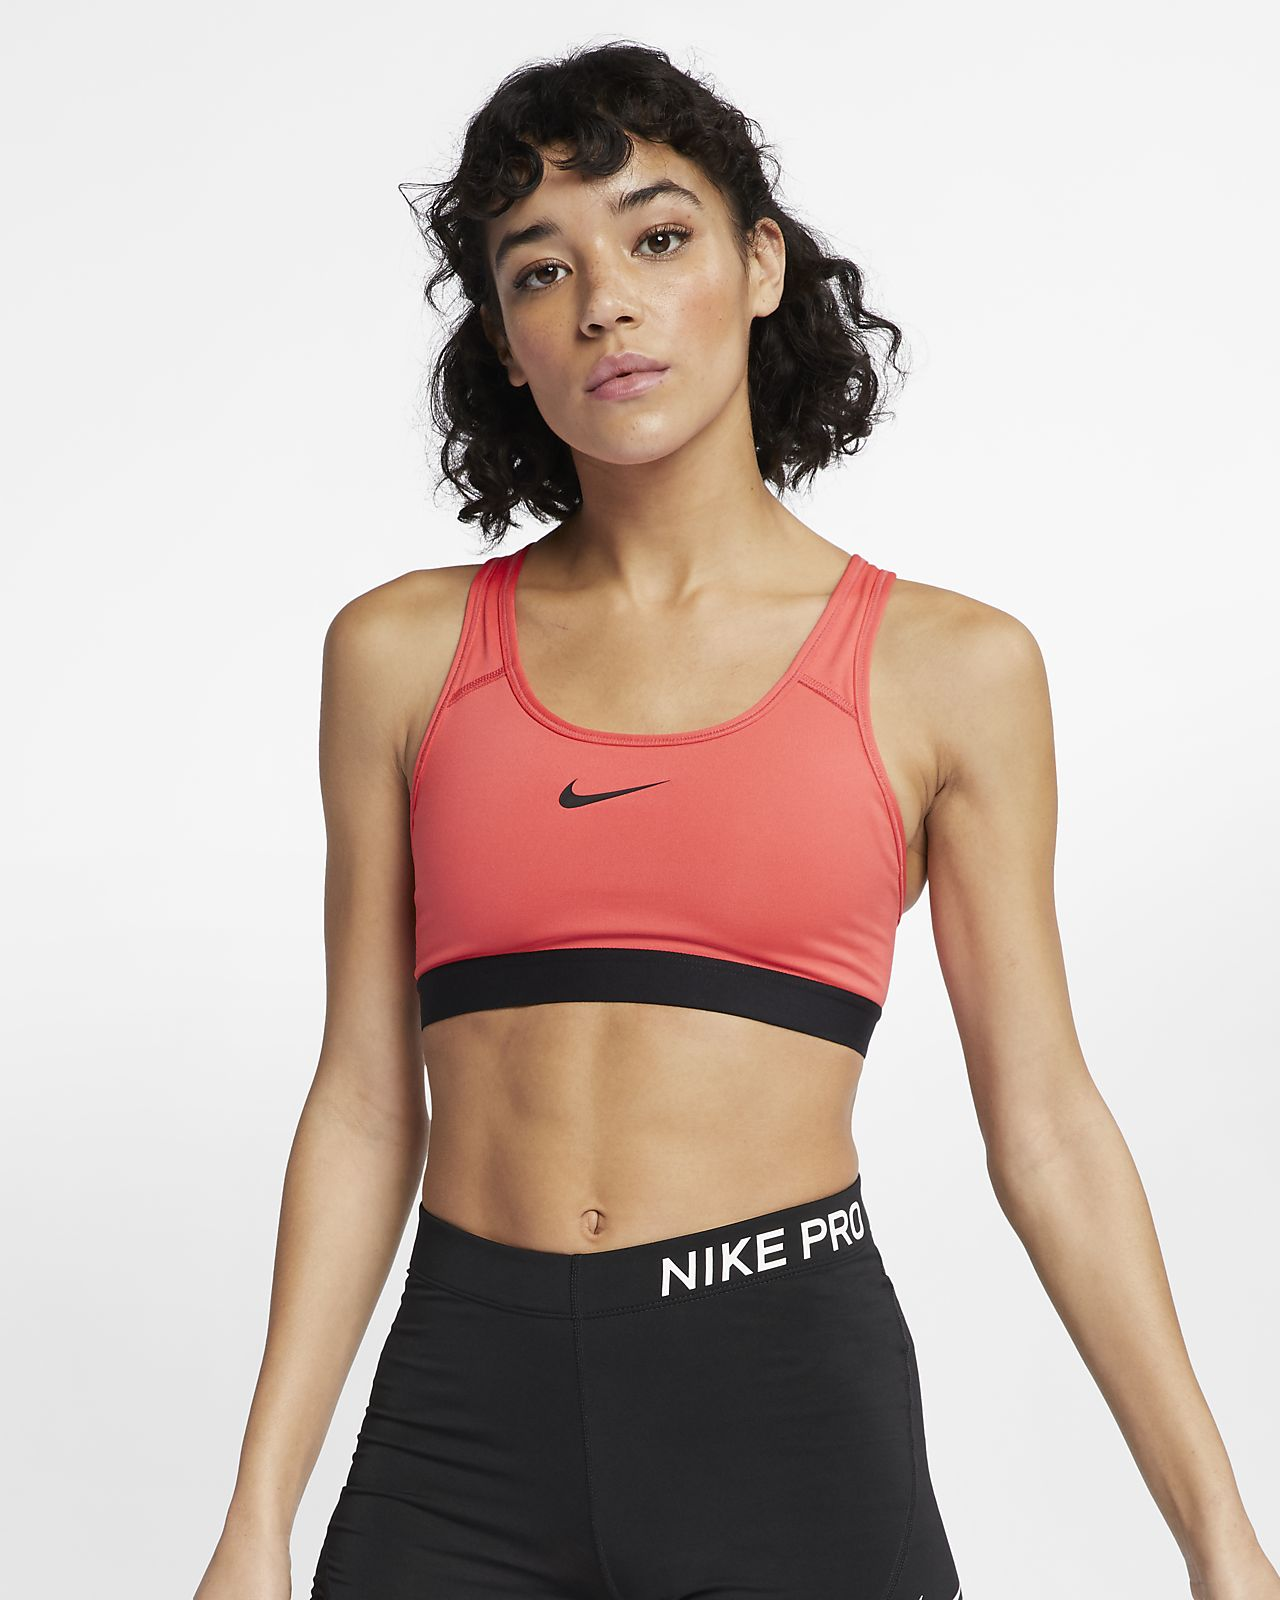 45d8d1e0b7 Nike Classic Padded Women s Medium-Support Sports Bra. Nike.com